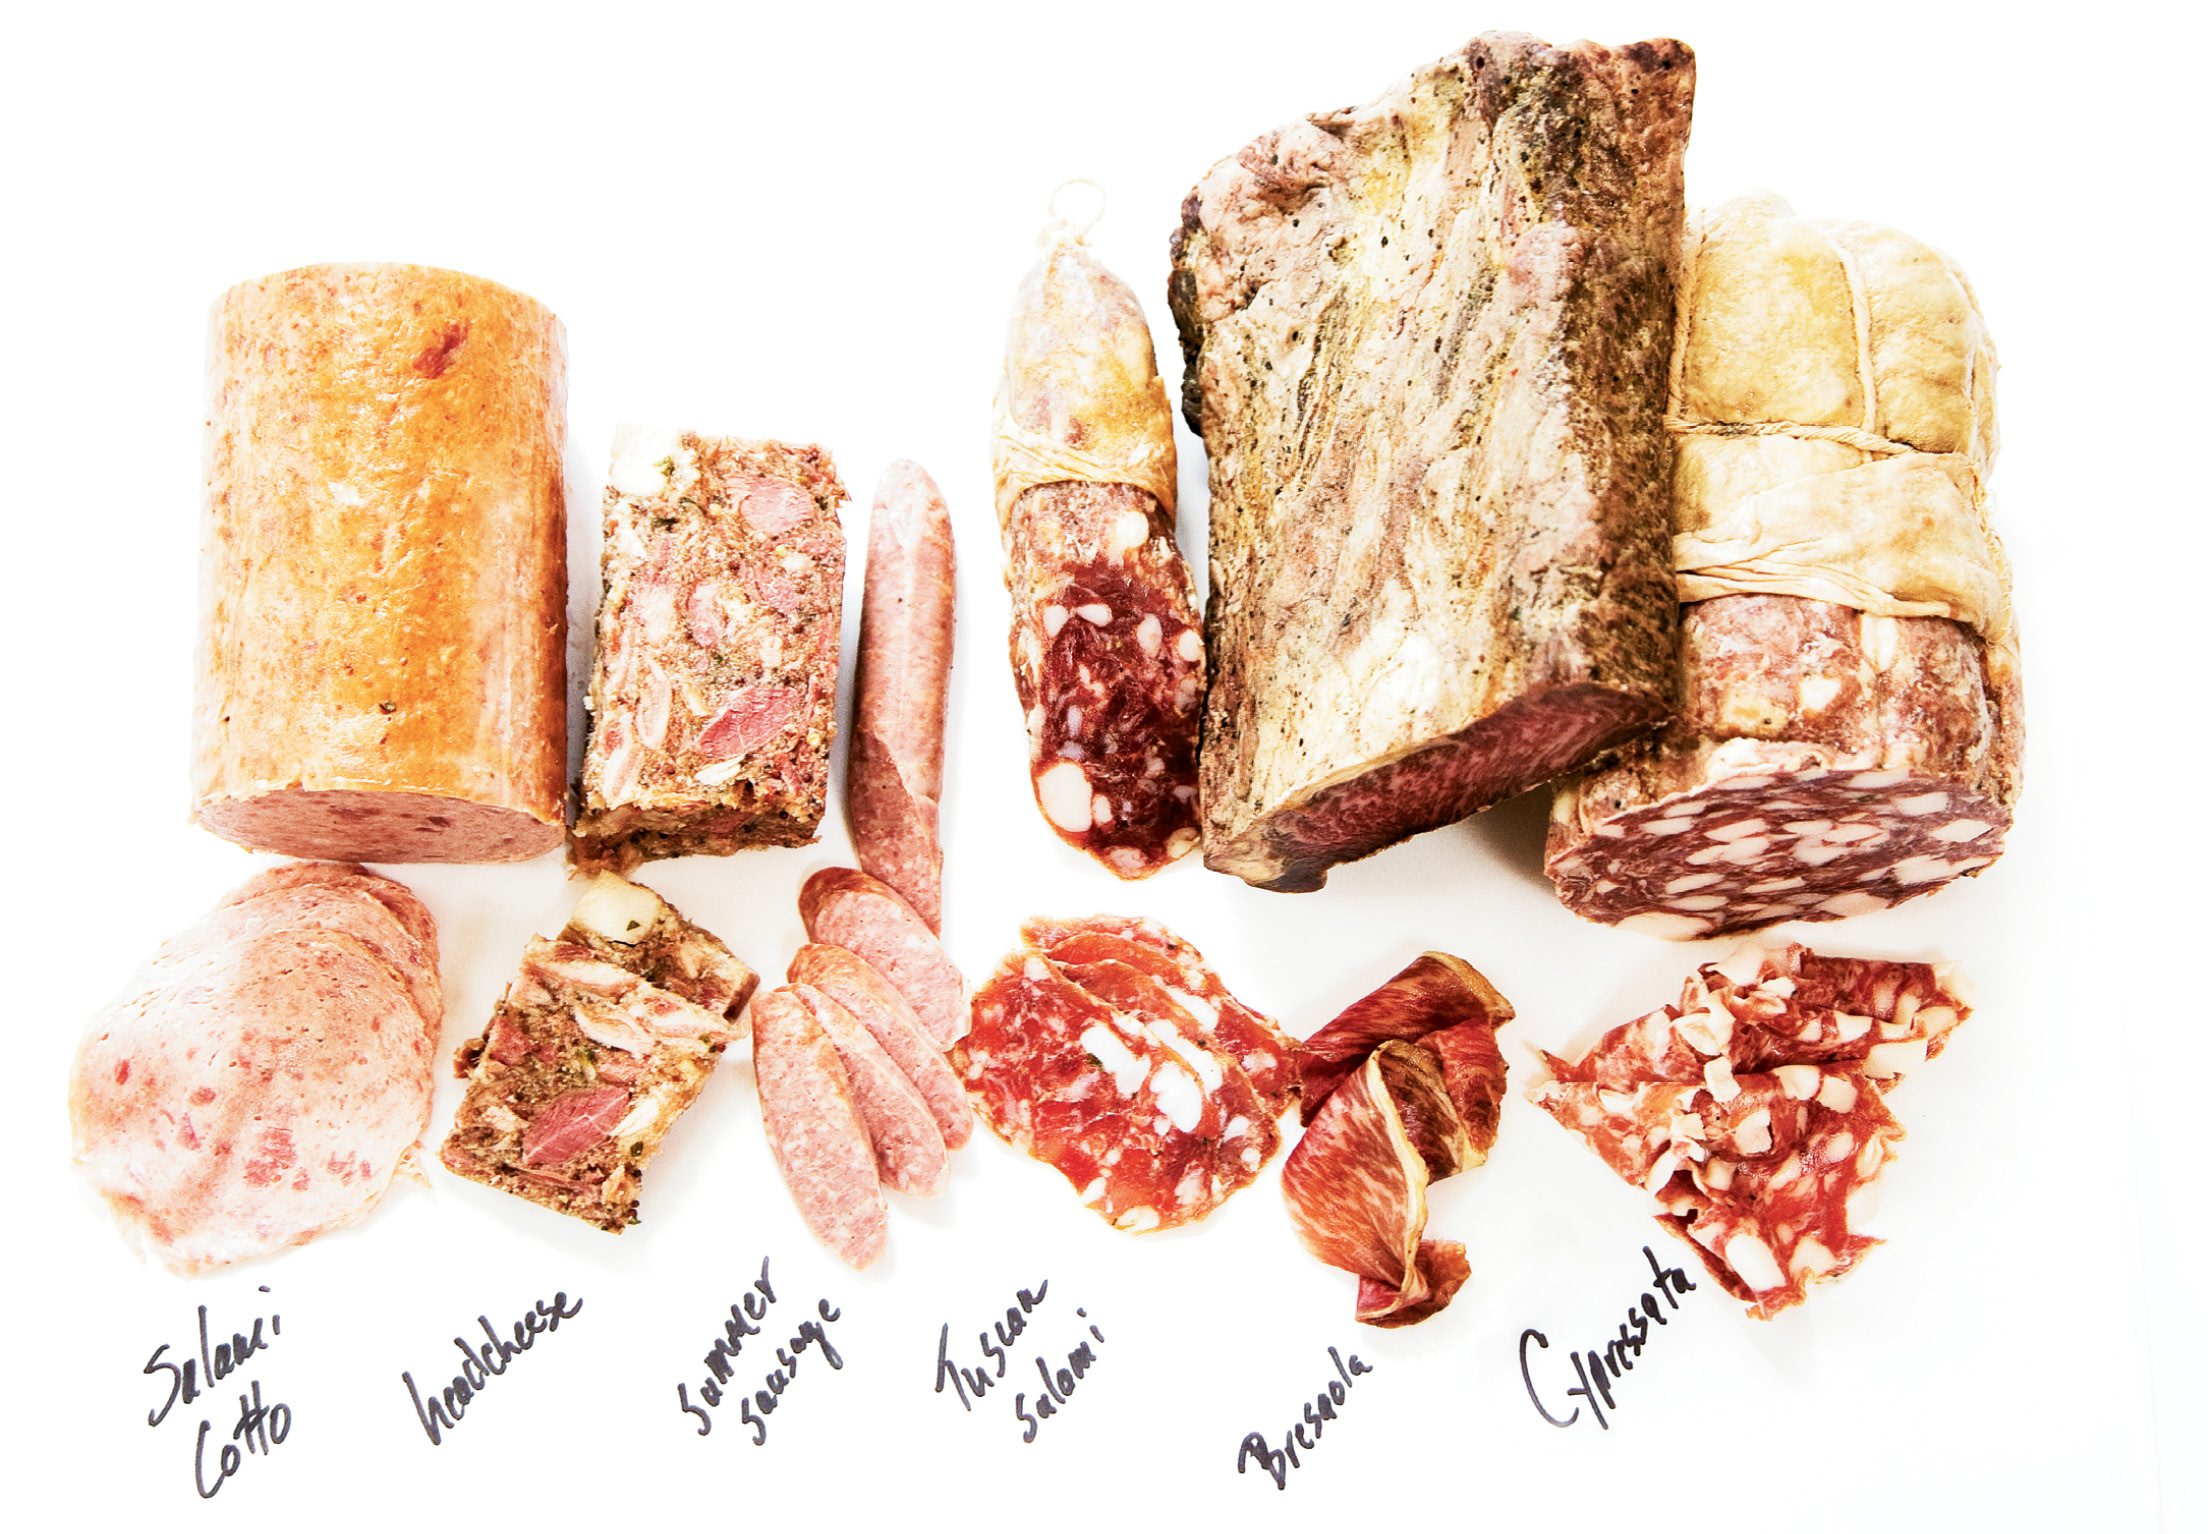 CHARCUTERIE: Artisan Meat Share (AMS)/Cypress